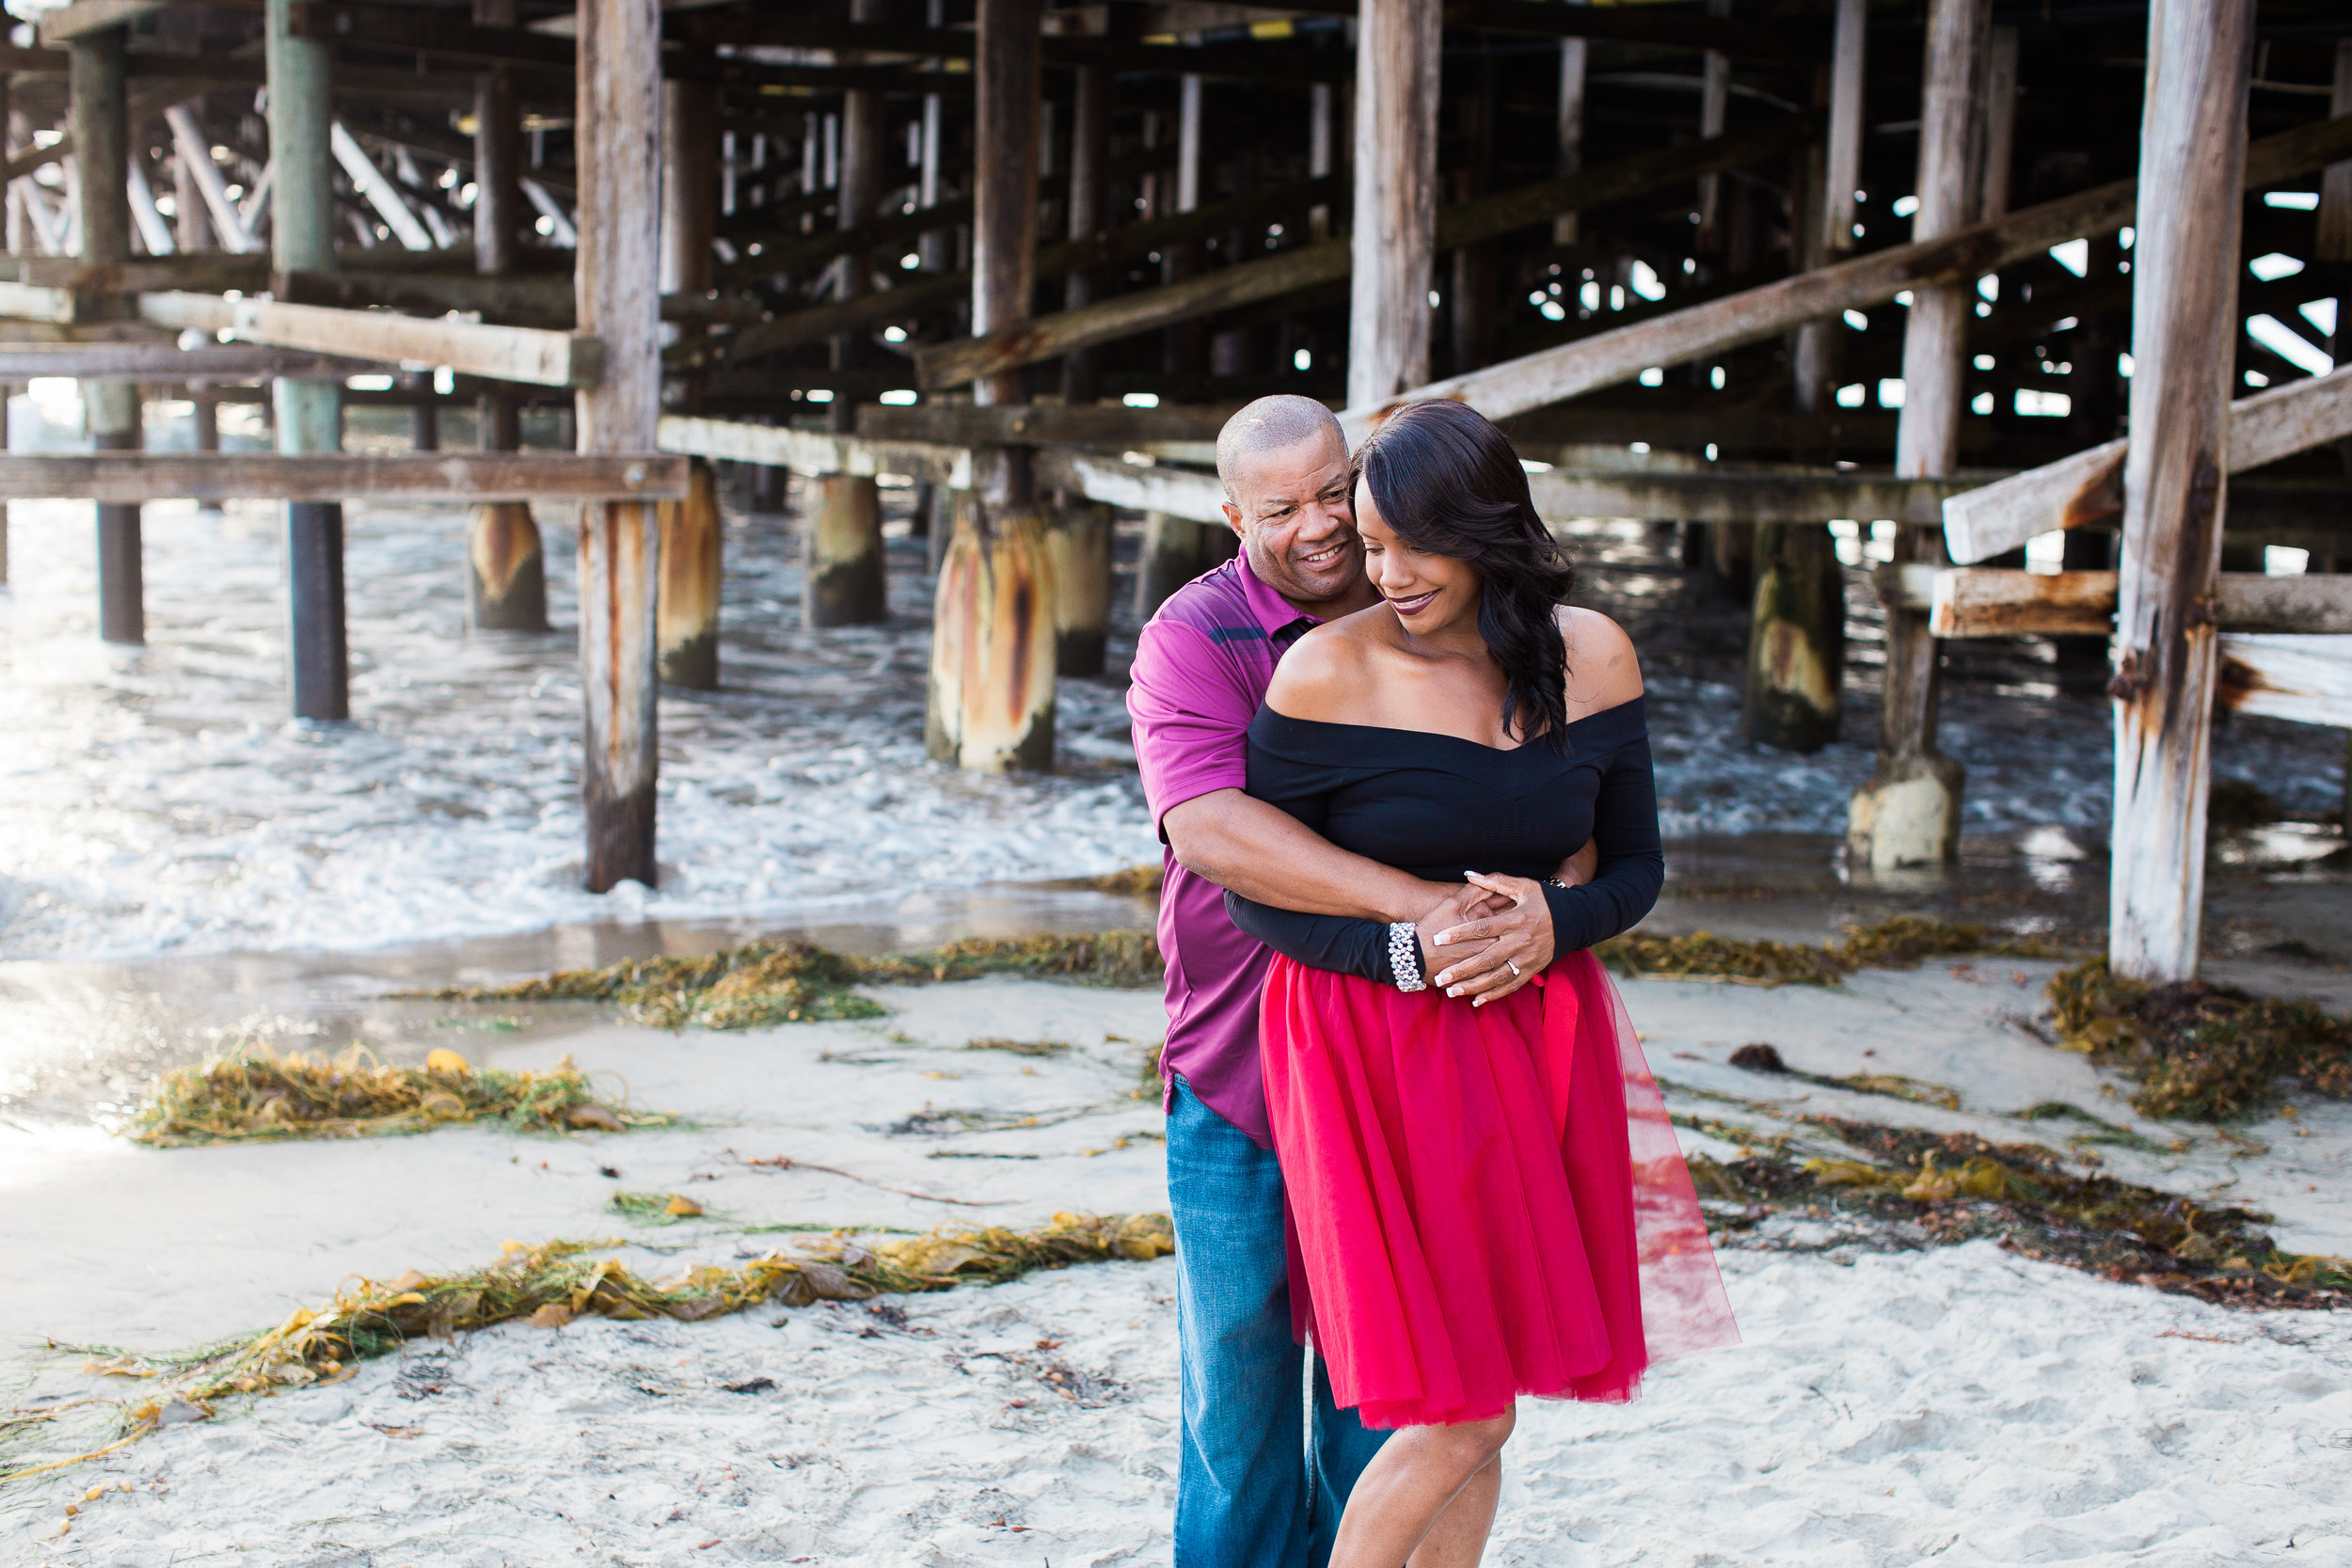 pacific-beach-engagement-session-sunset-golden-hour-crystal-pier-film-style-photographer